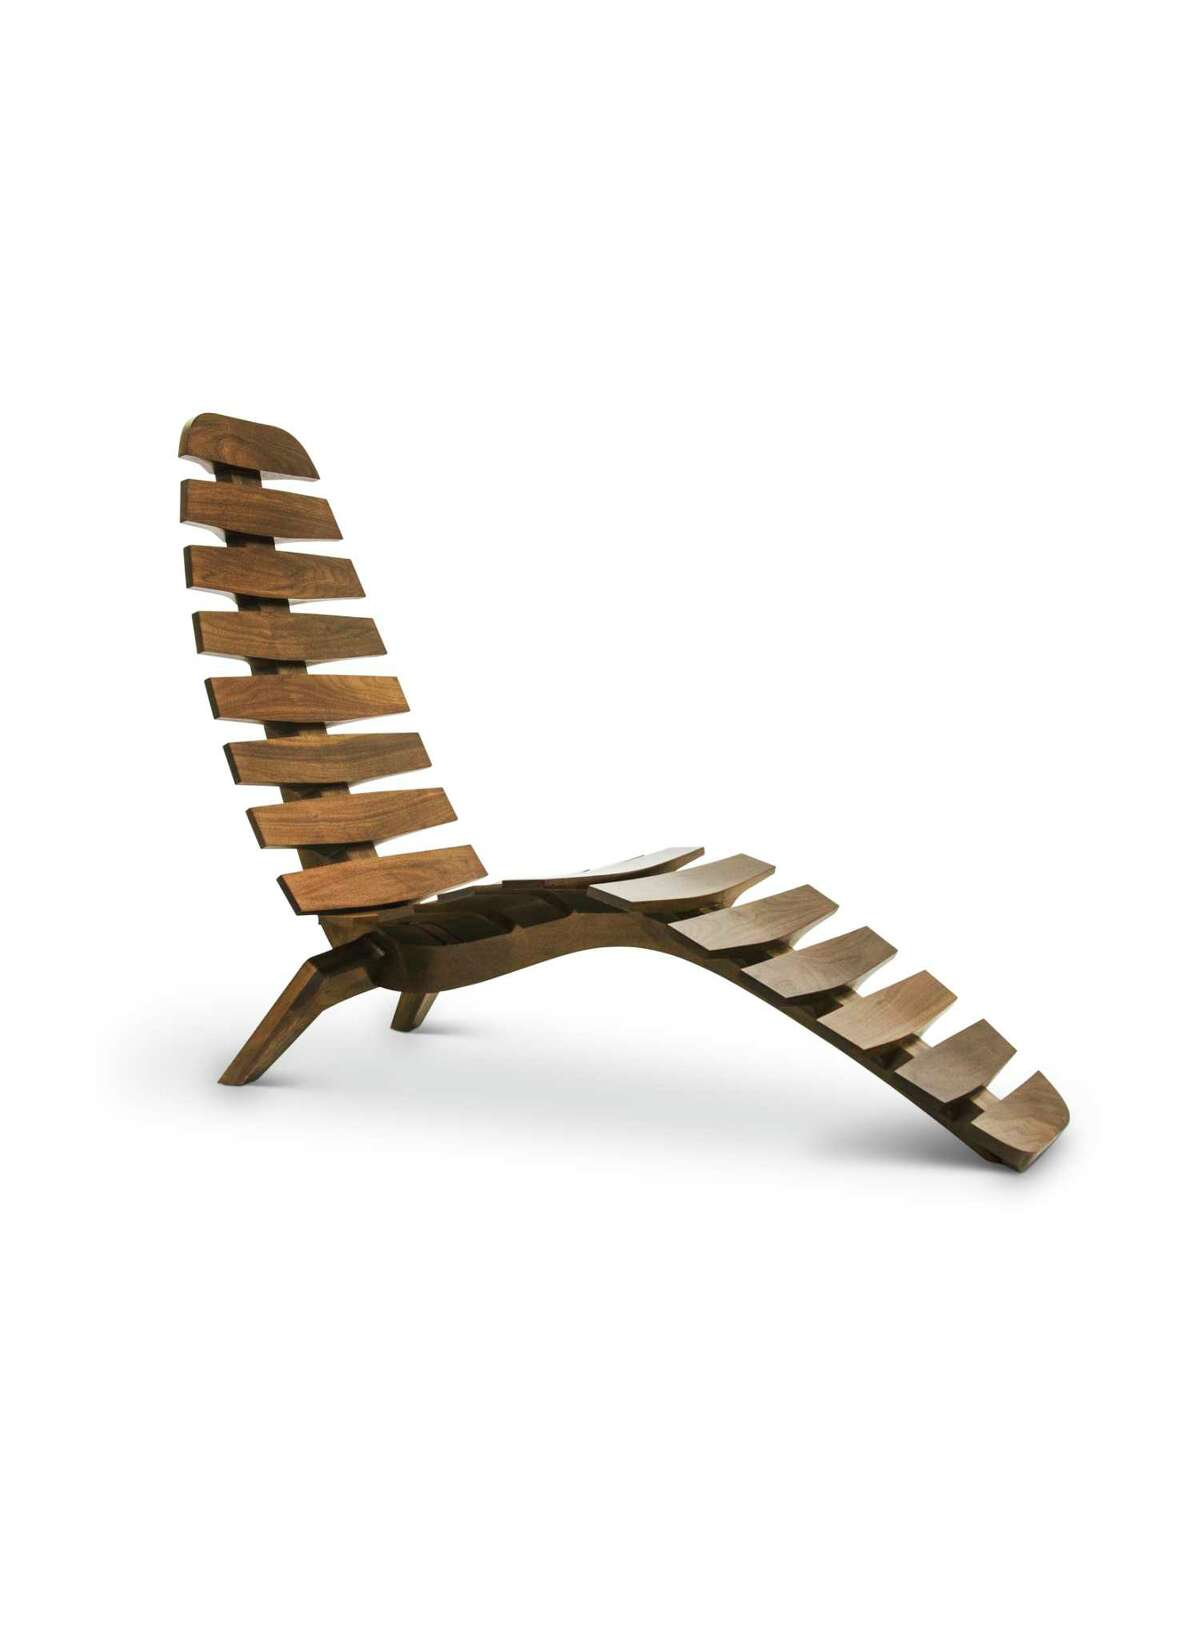 Designed by Don Howell for Hellman-Chang, the Sternum Chaise is made of teak and was inspired by the human spine and ergonomics.